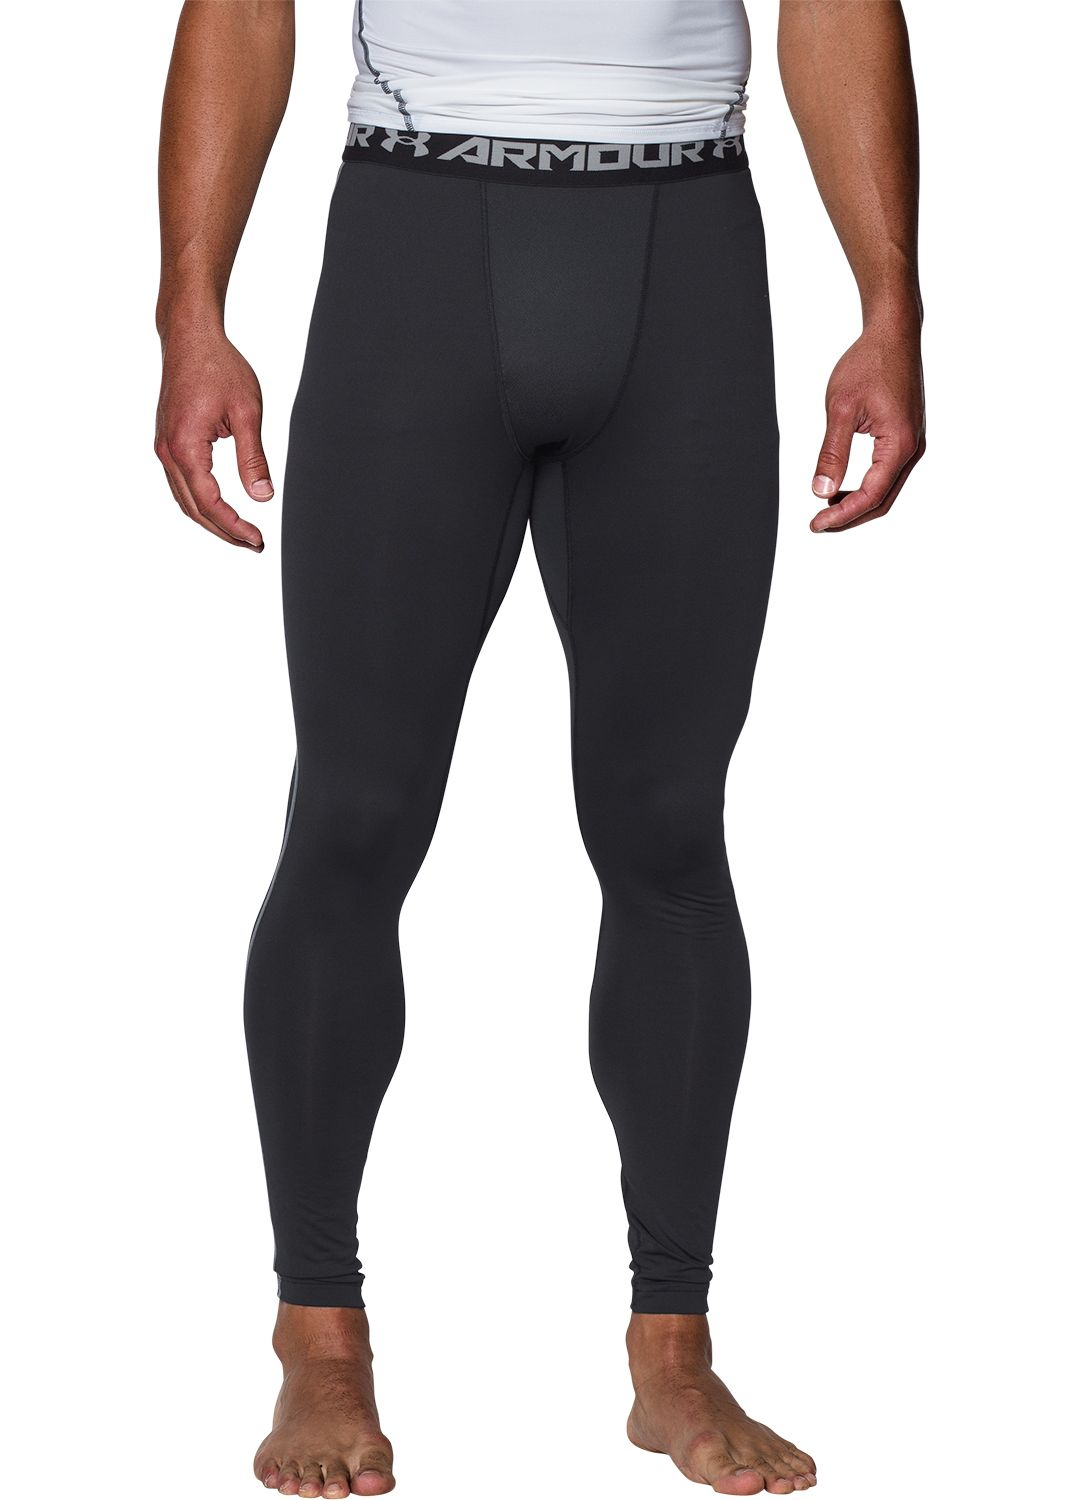 a3af0c894a Under Armour Men's ColdGear Armour Compression Leggings | DICK'S ...